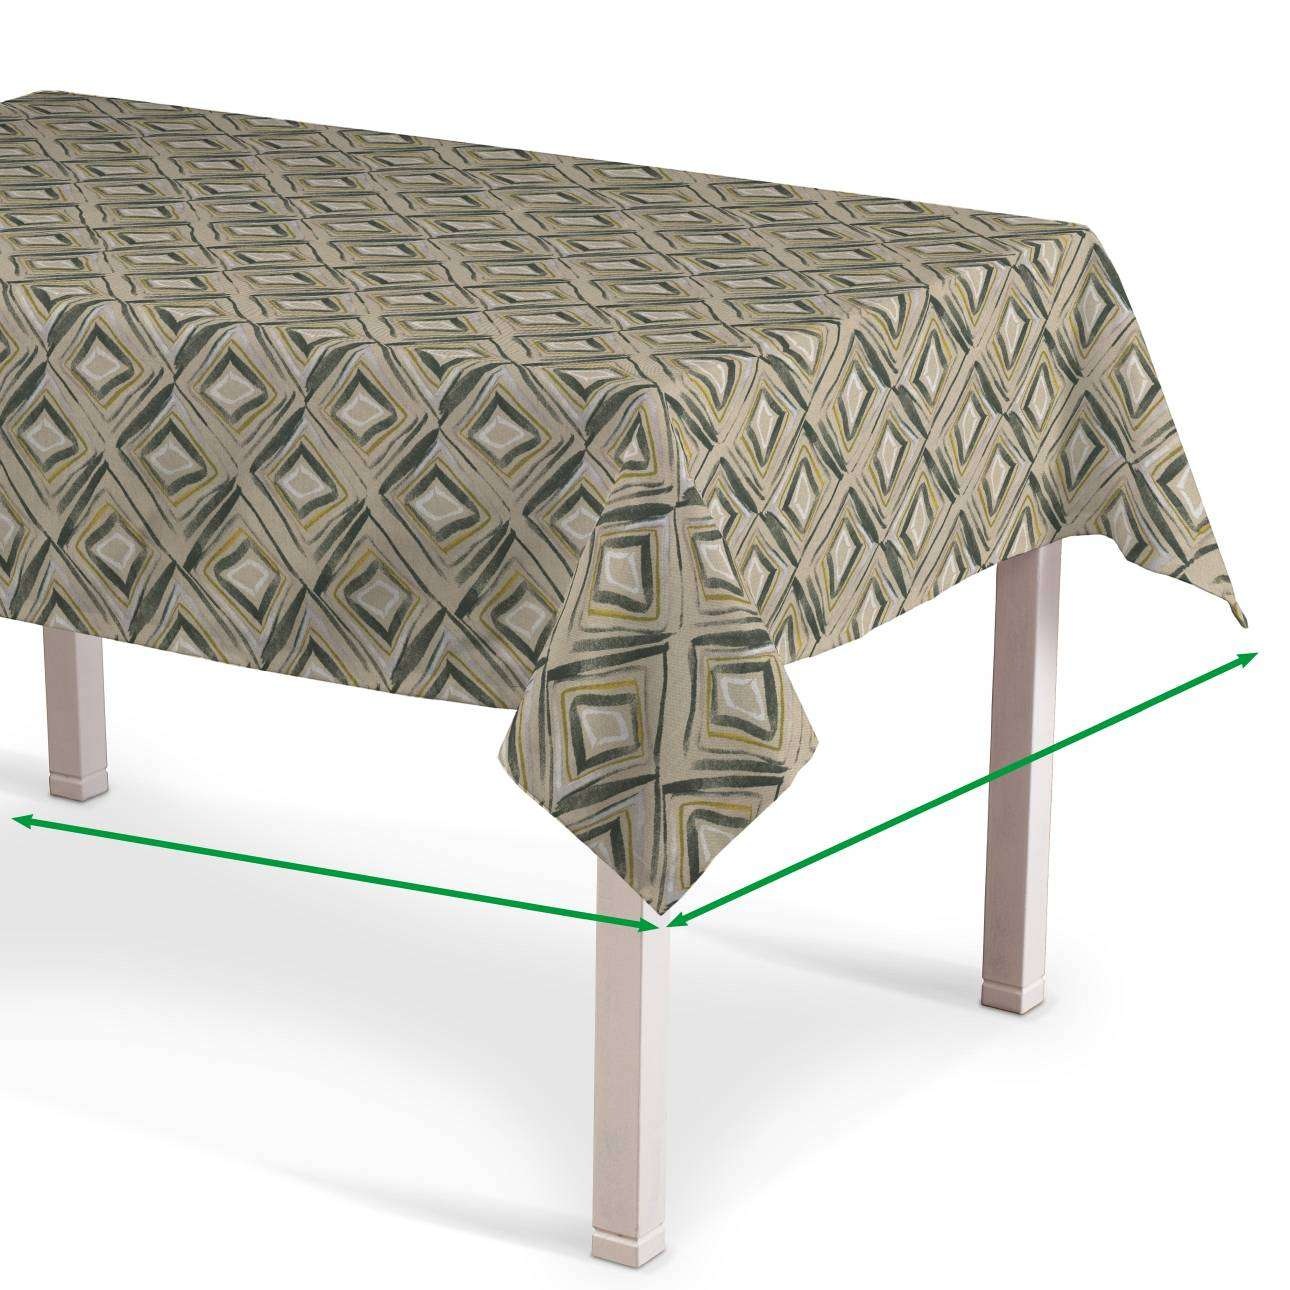 Rectangular tablecloth in collection Londres, fabric: 140-46